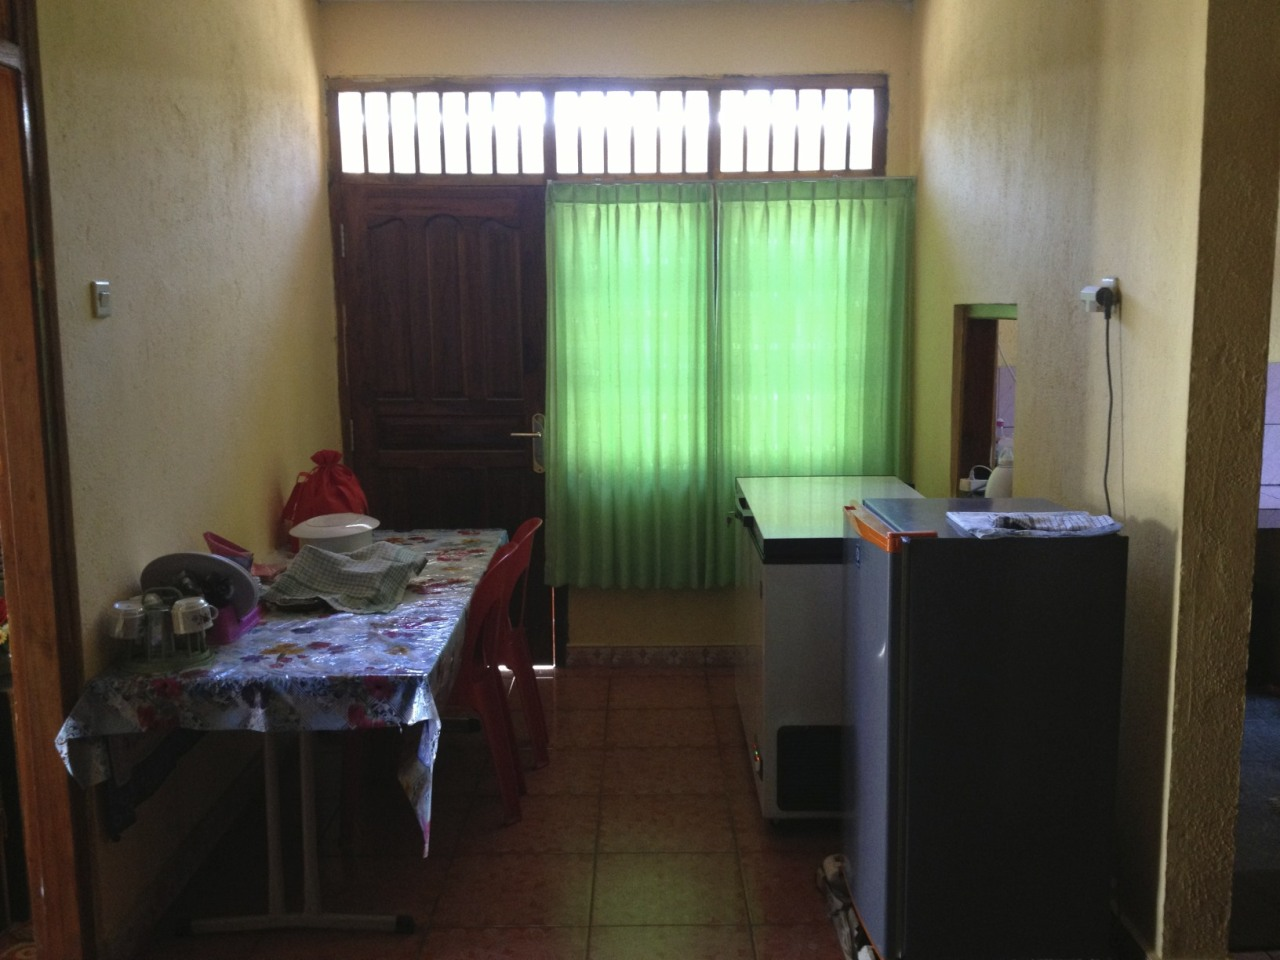 Alva k lim looking for a house to rent in dili 3 bedroom for Looking for a 4 bedroom